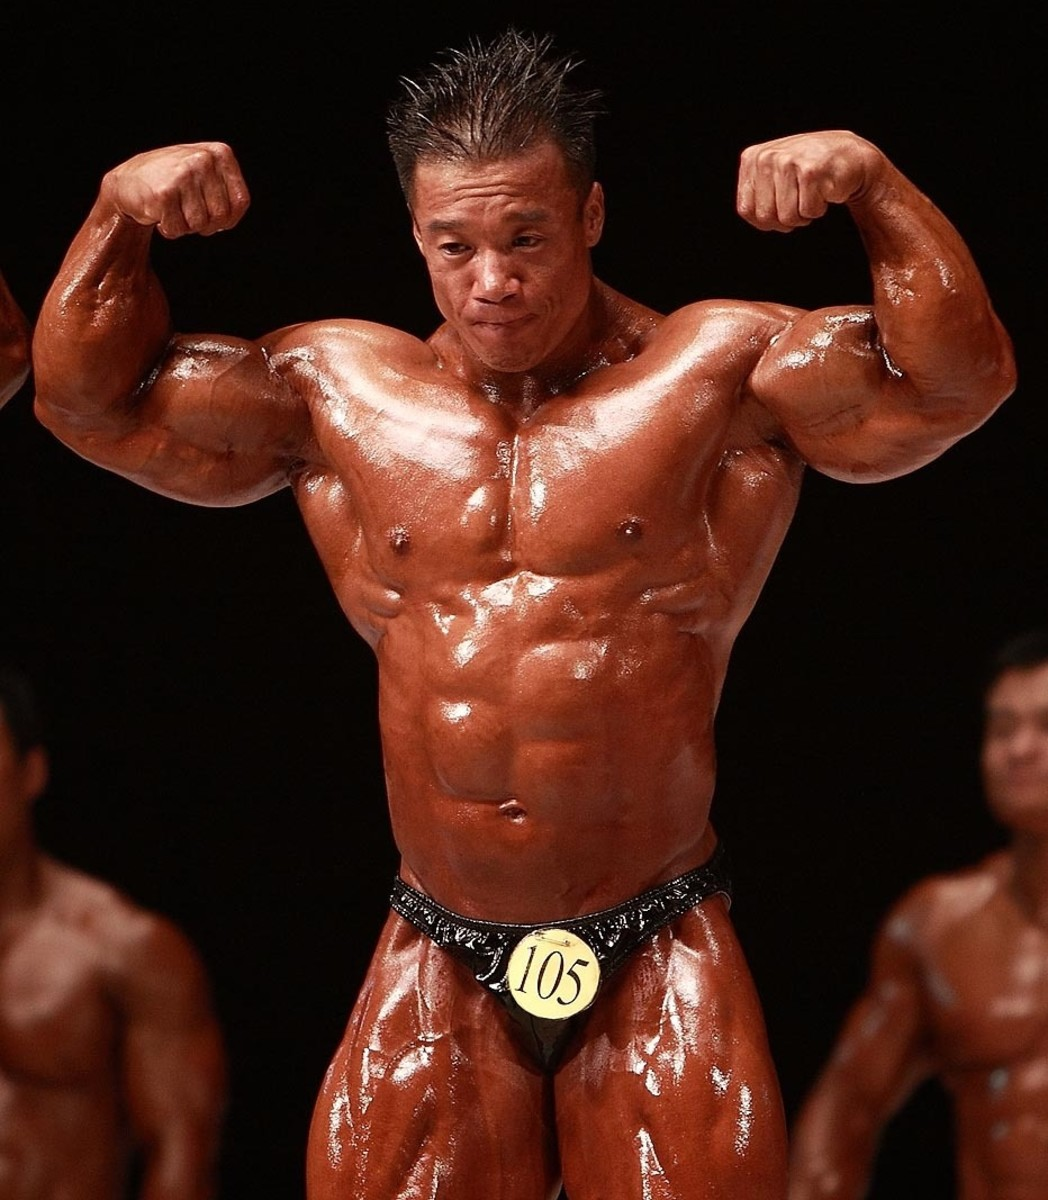 Korean bodybuilder Park Ki Seok (박기석) doing a double biceps pose at the 2009 National Sports Festival